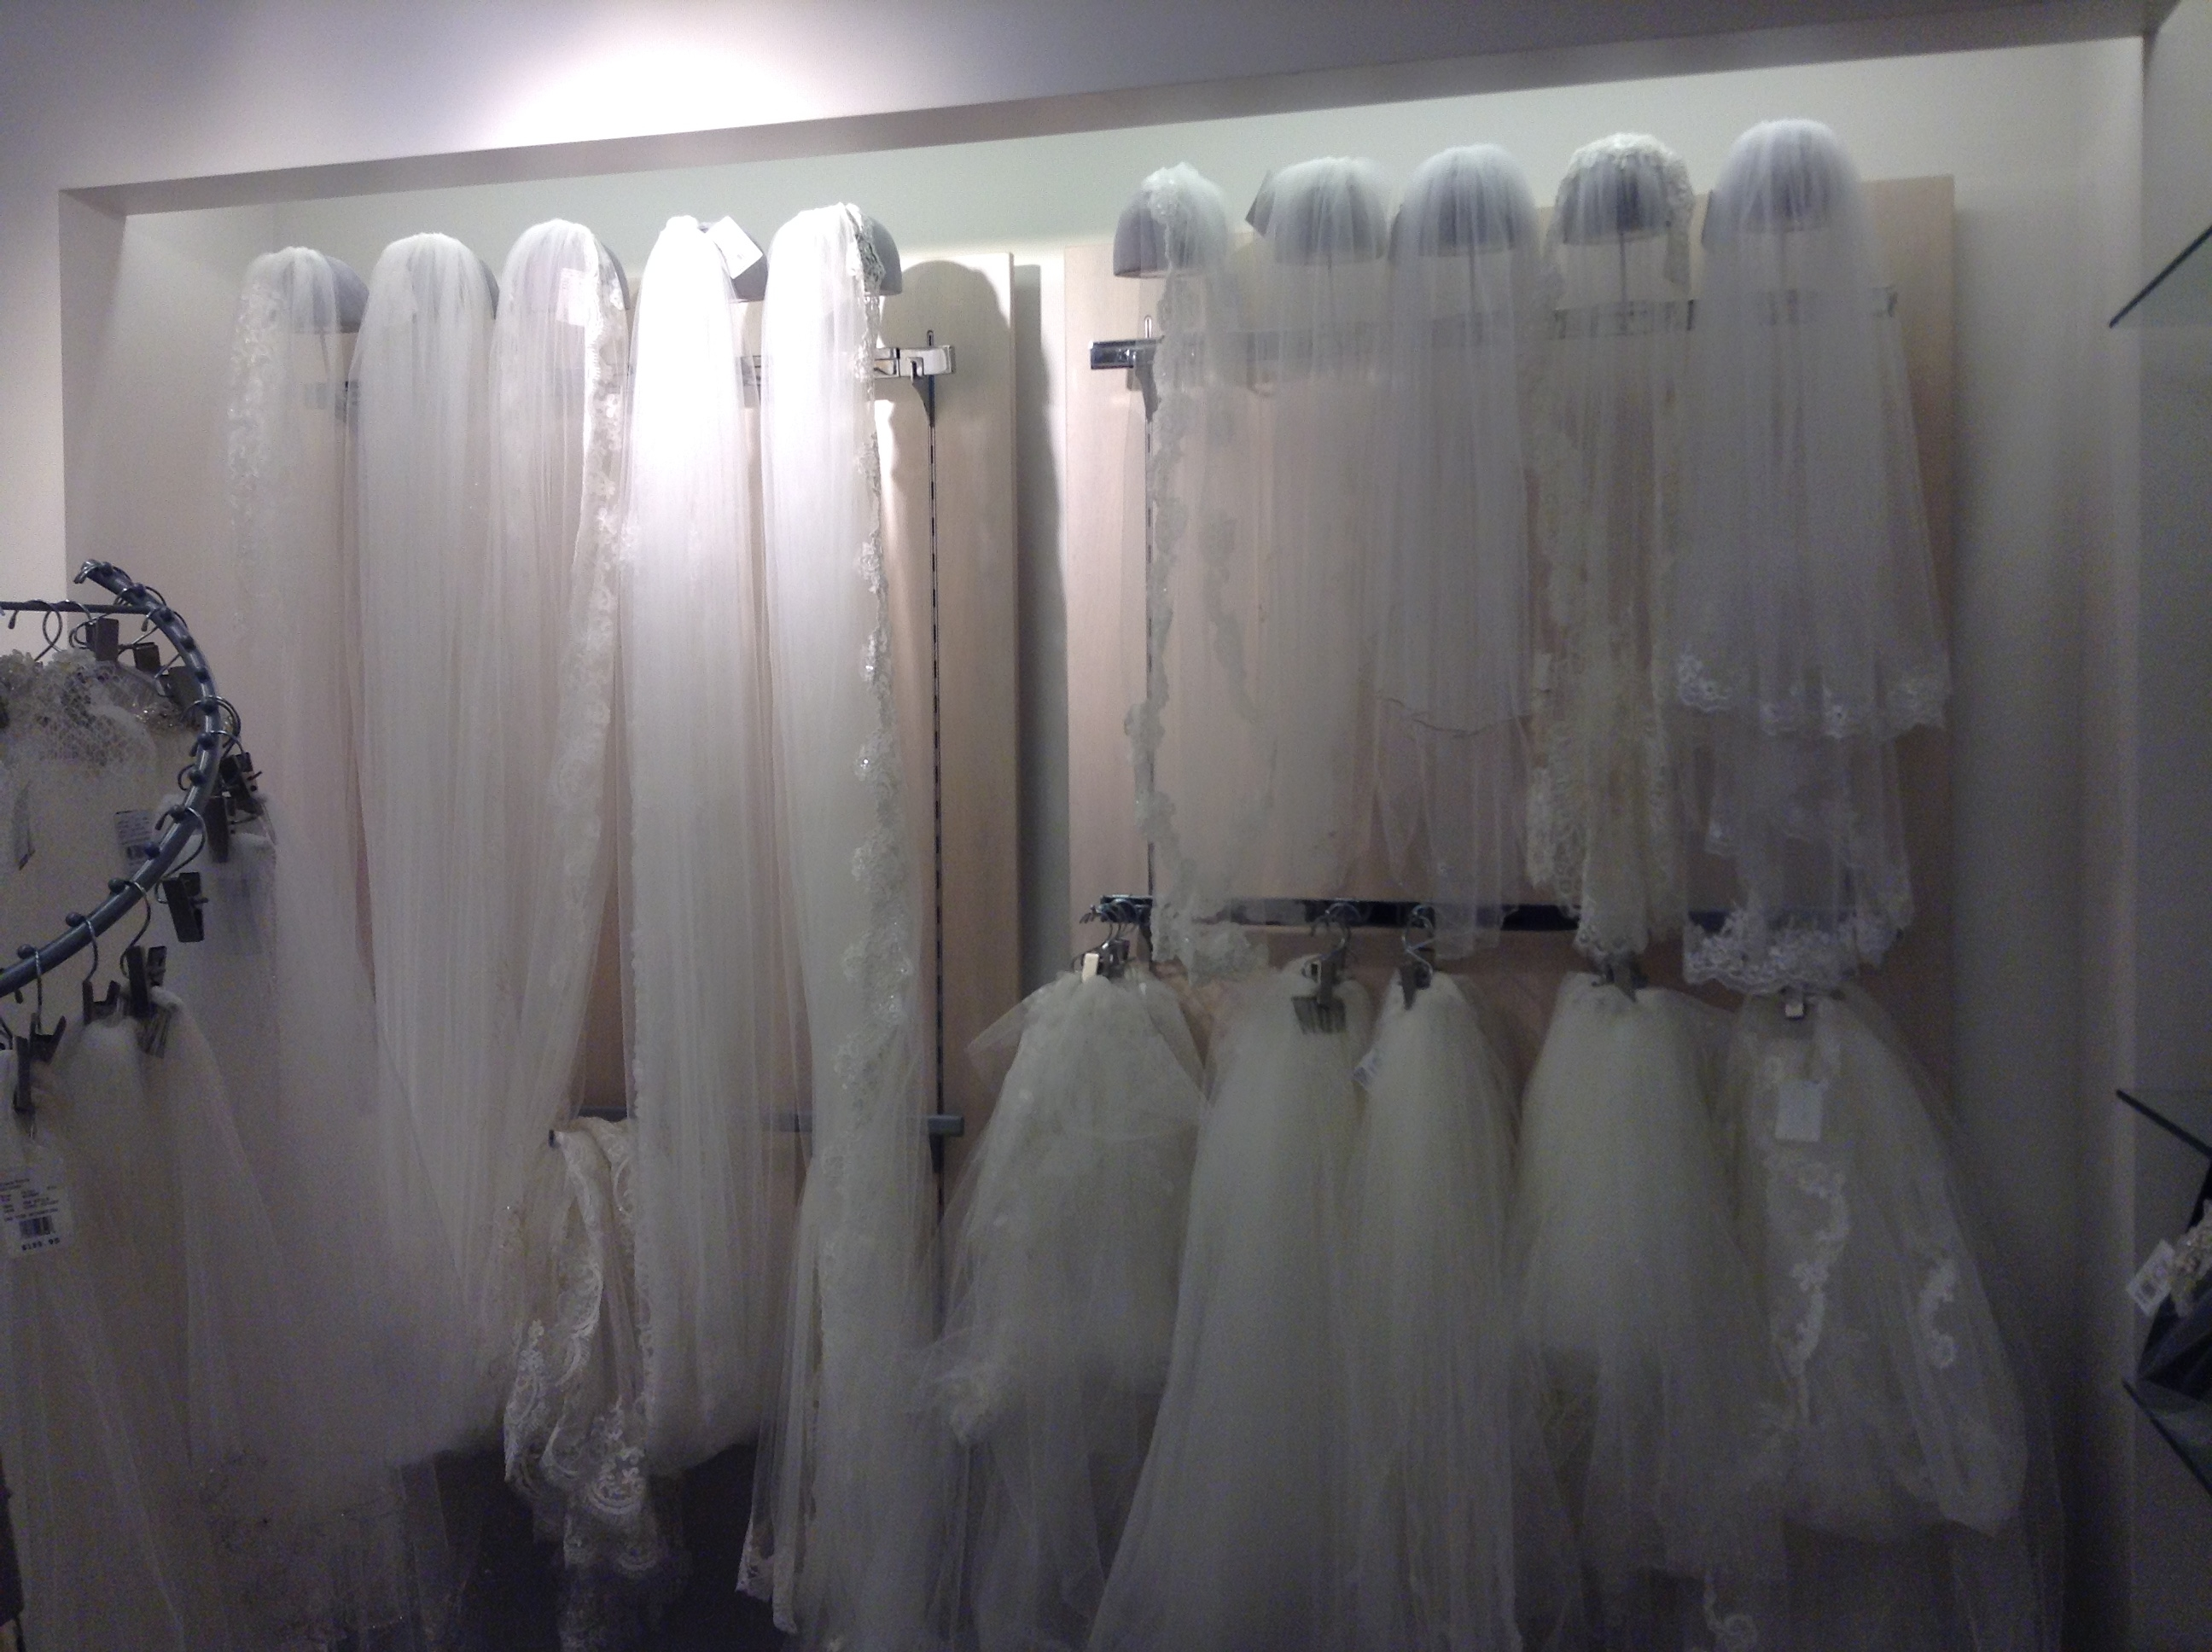 David's Bridal is the nation's leading bridal retailer. We have over locations nationwide, and more stores opening all the time! In the first David's Bridal opened in Fort Lauderdale, Florida. It rapidly achieved notoriety as the most elegant bridal salon on the East Coast.